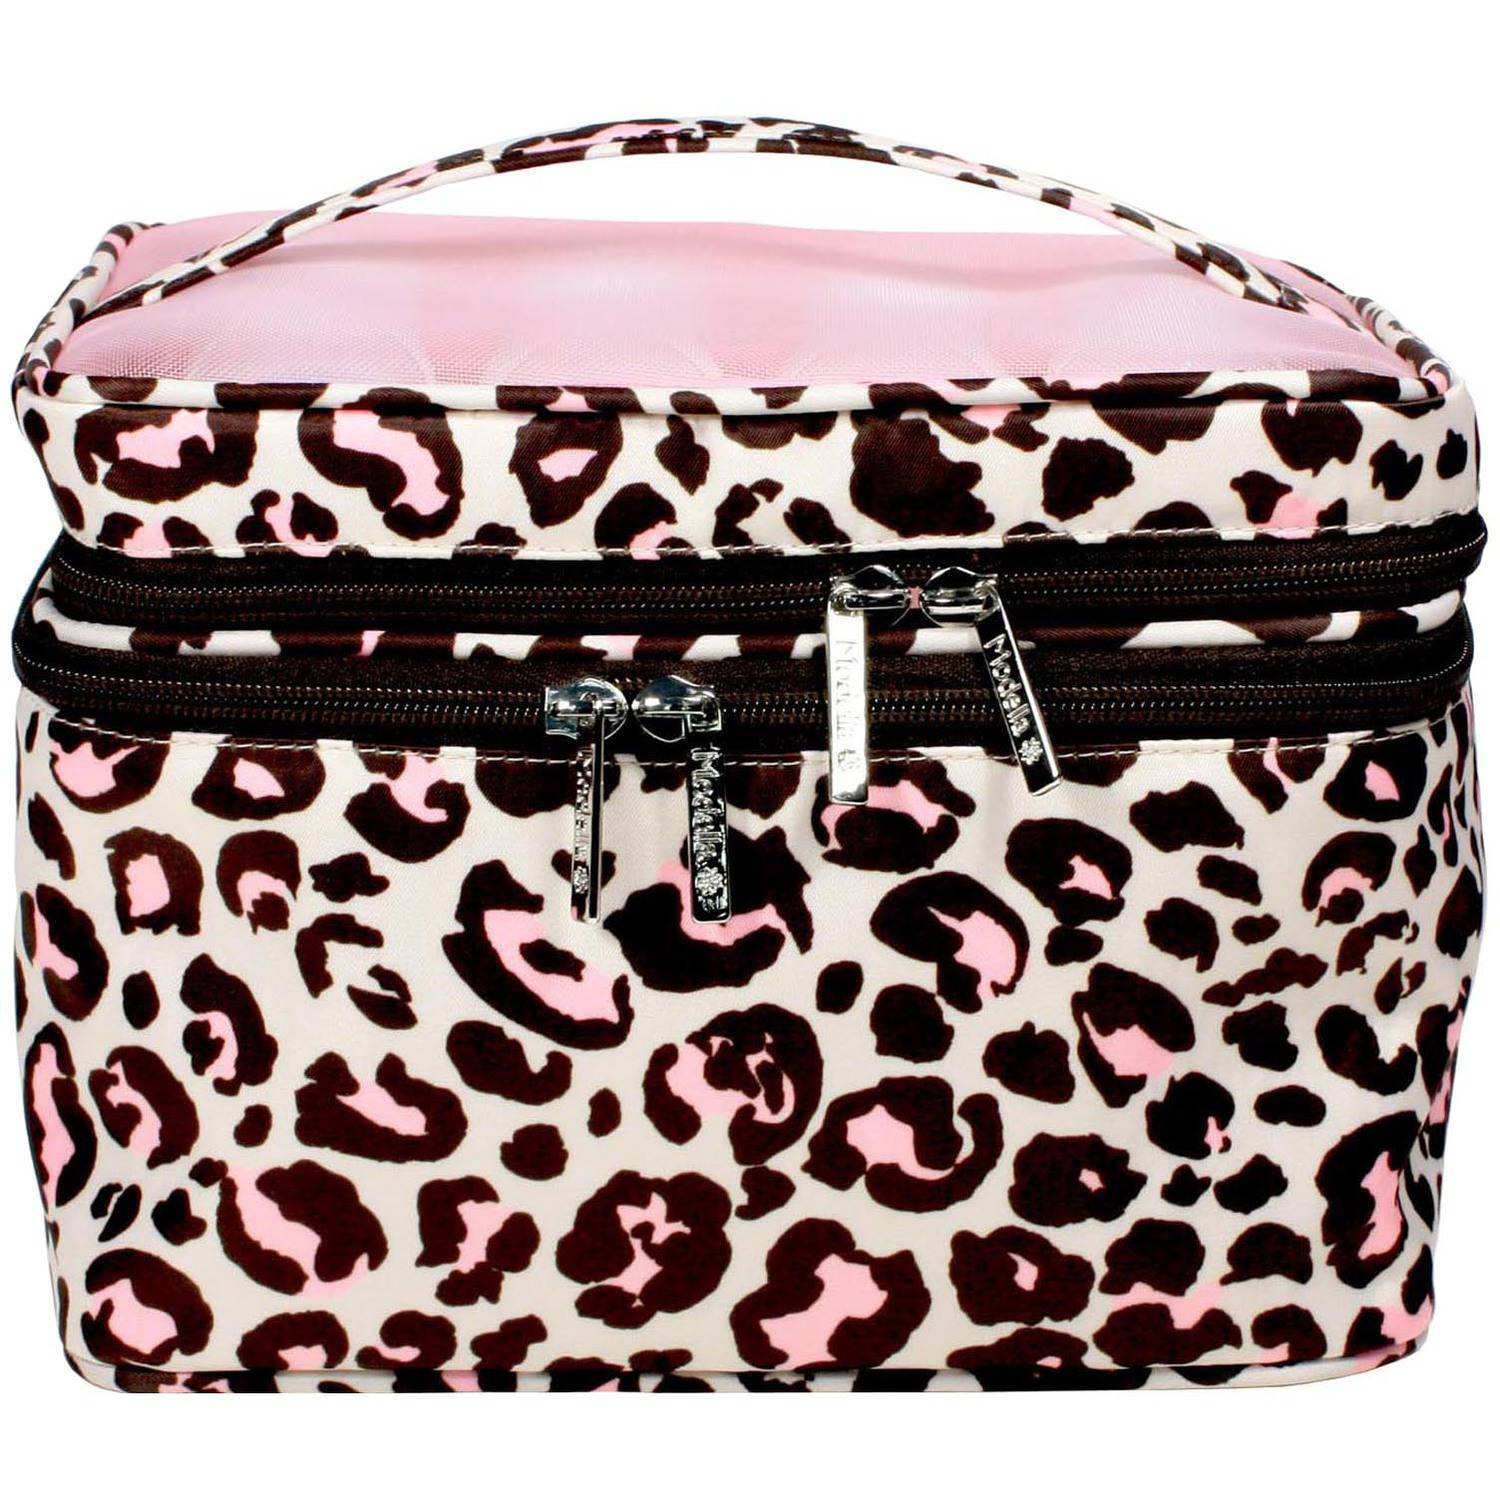 Modella Cheetah Fitted Train Case Set, 5 pc